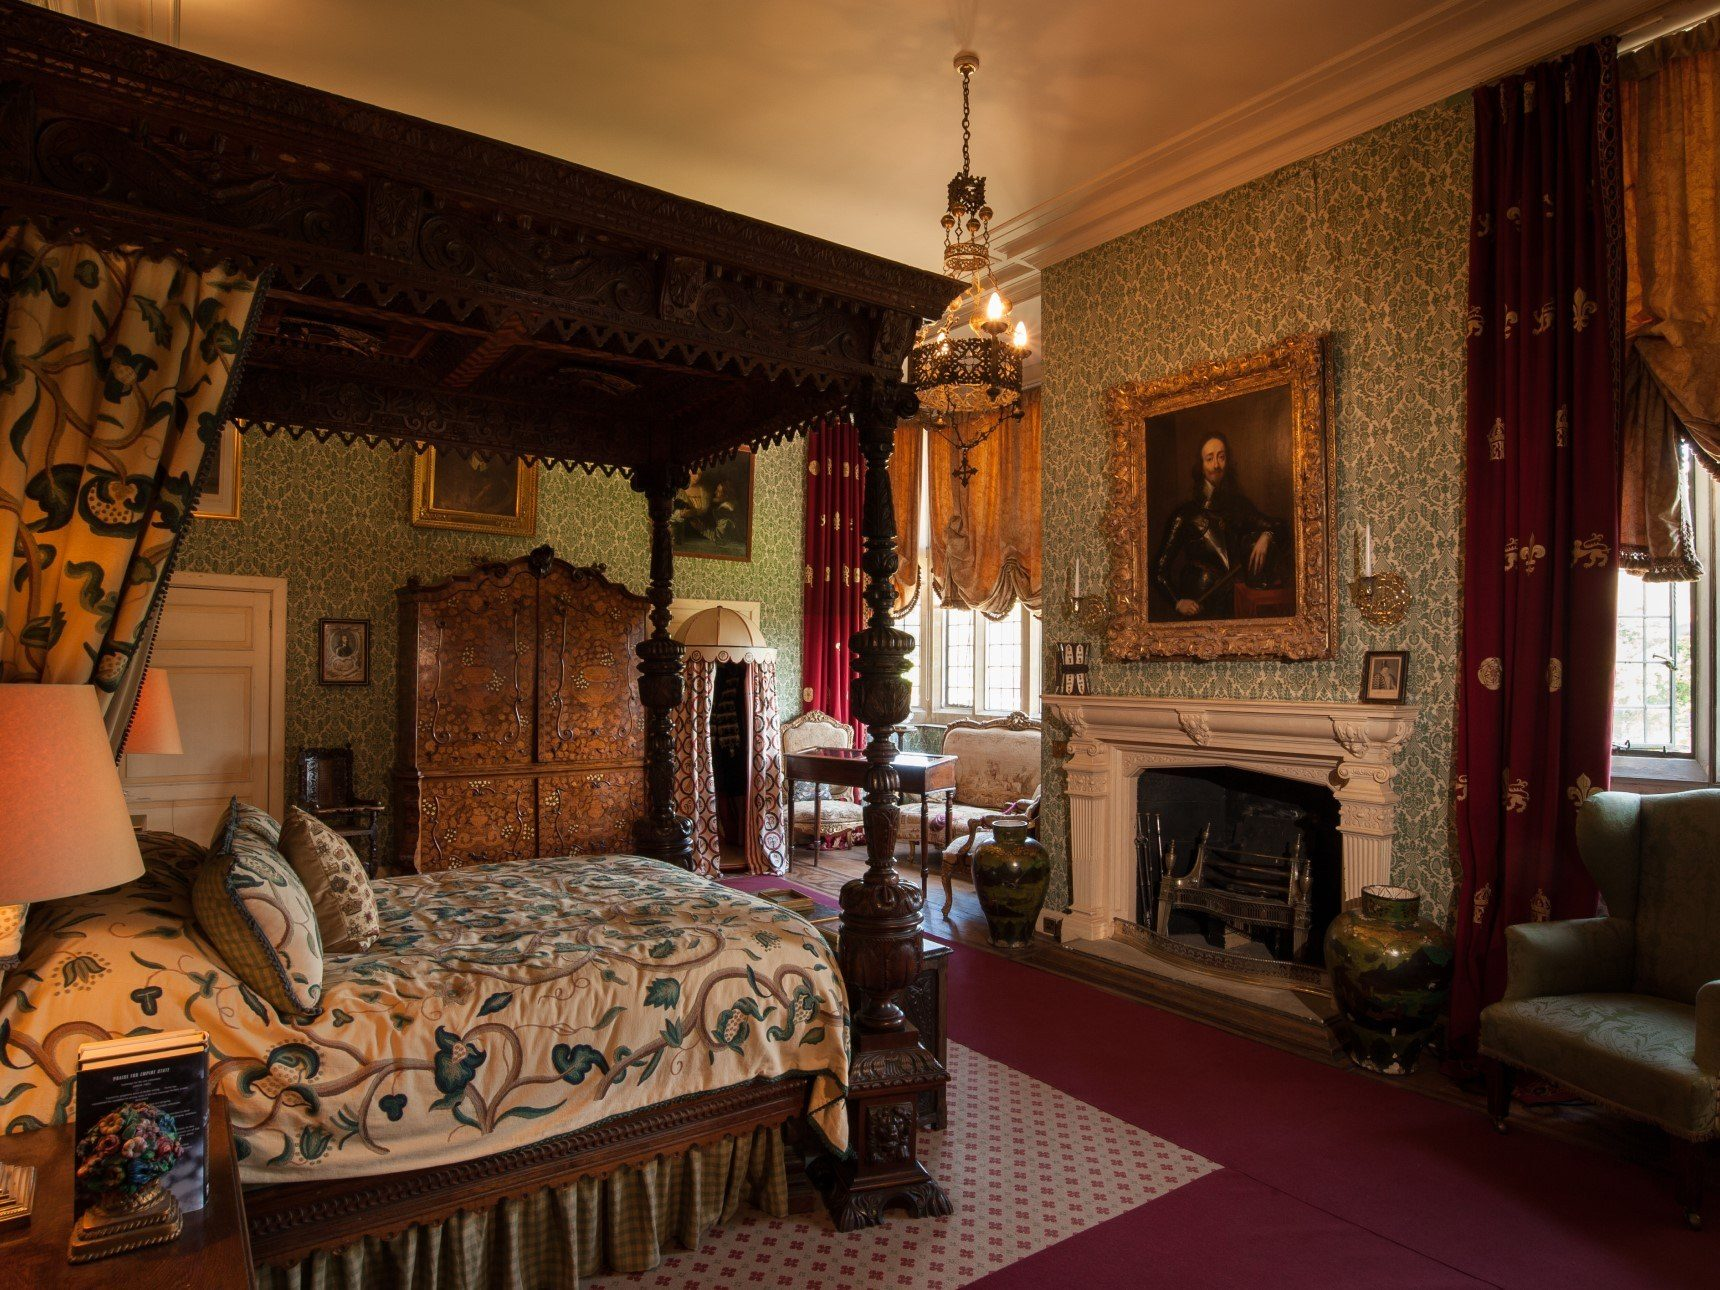 The Chandos Bedroom showing the bed rumoured to have been slept in by Charles I